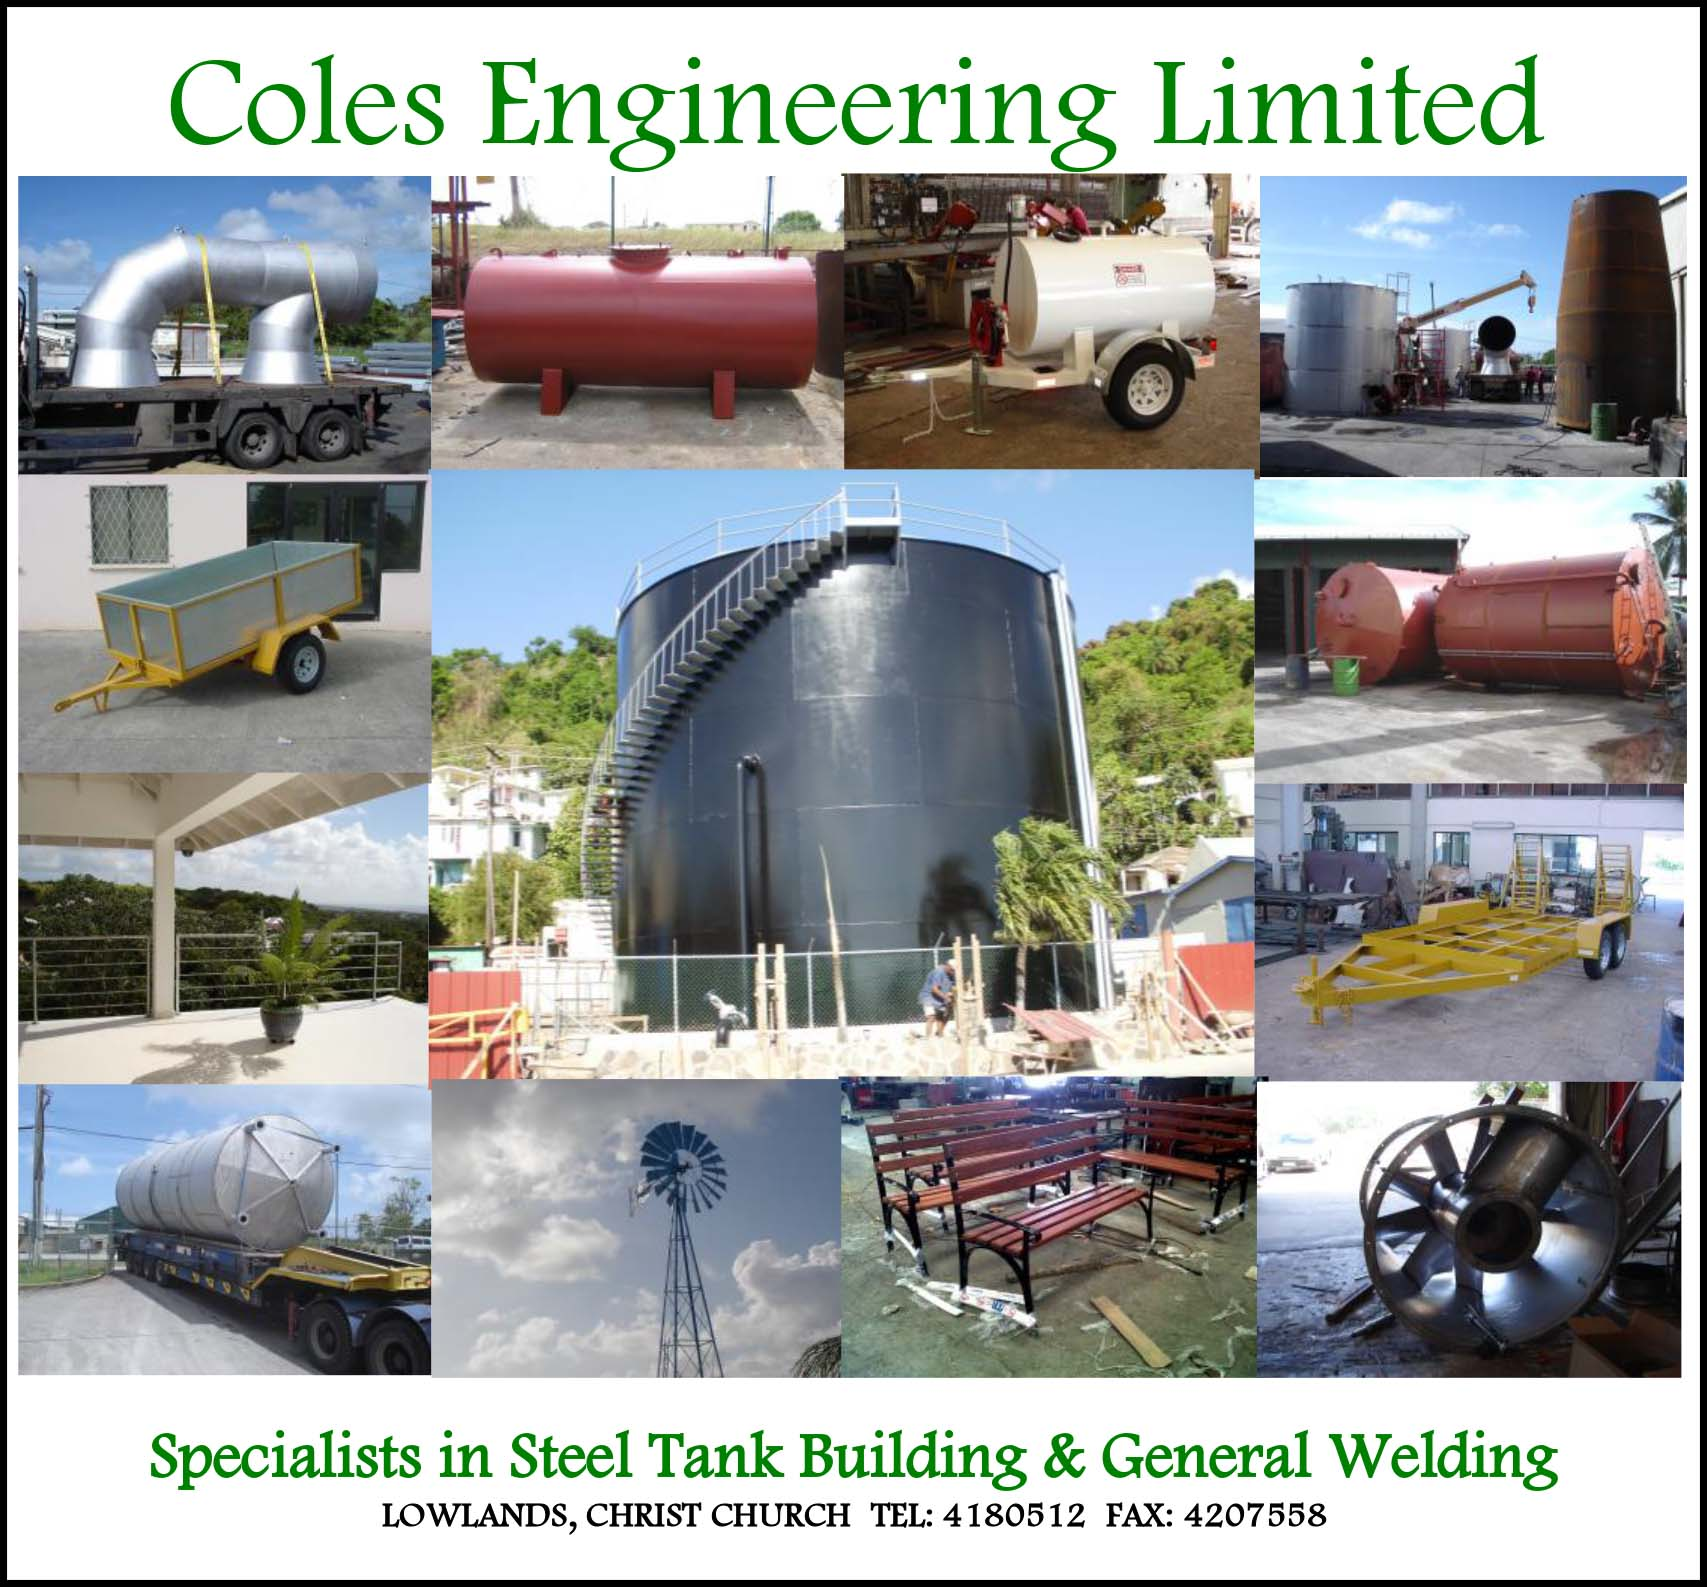 coles-engineering-ltd-ad